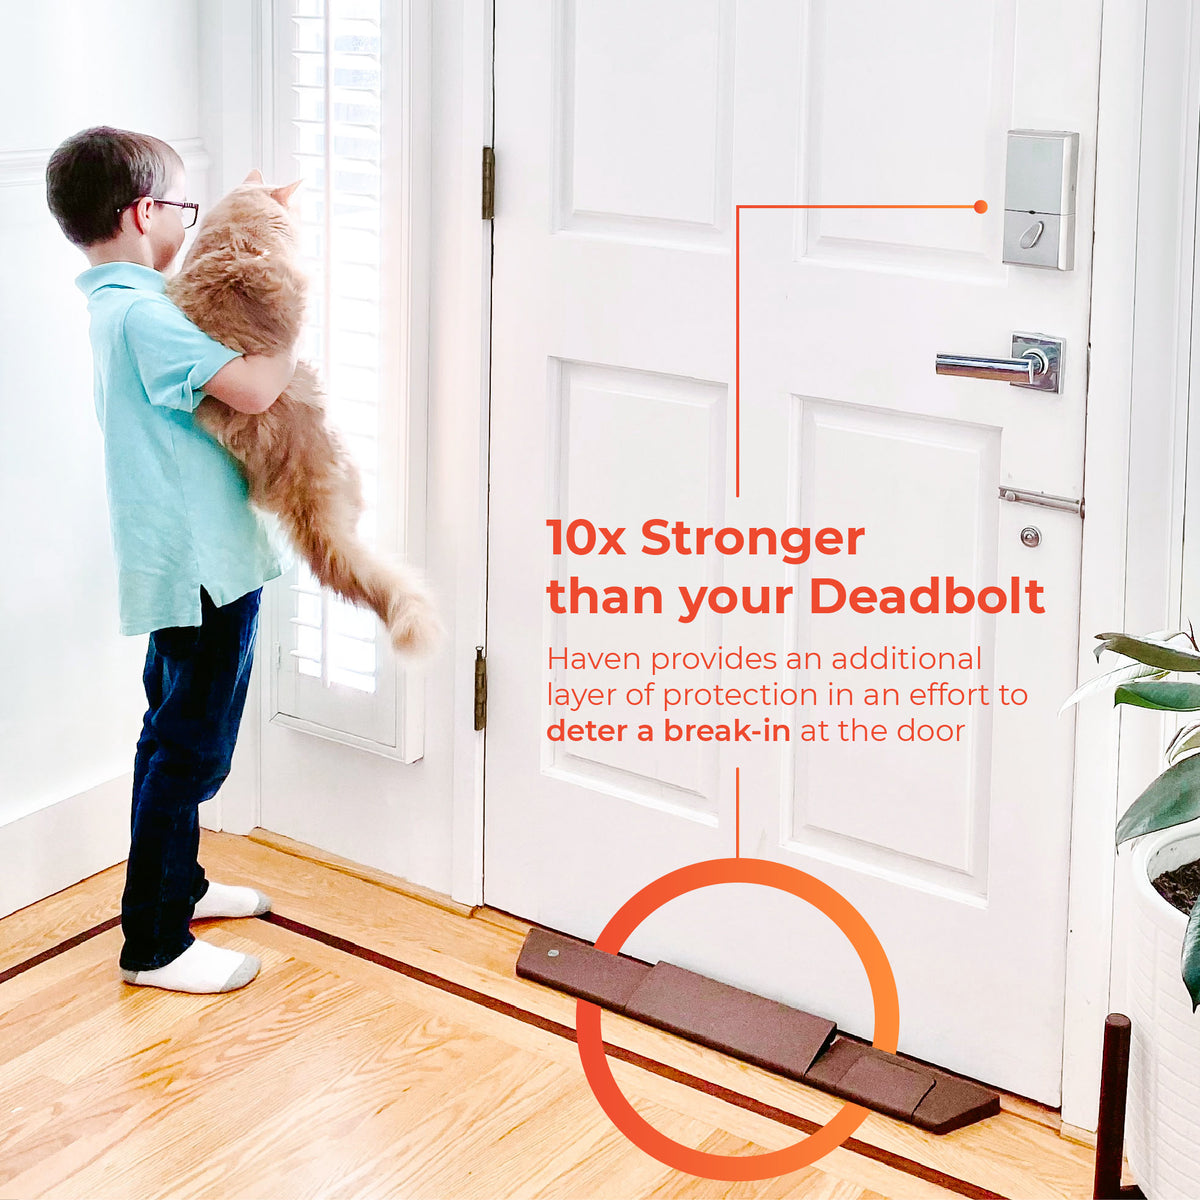 10X stronger than your deadbolt. Haven provides and additional layer of protection to deter a break-in at the door